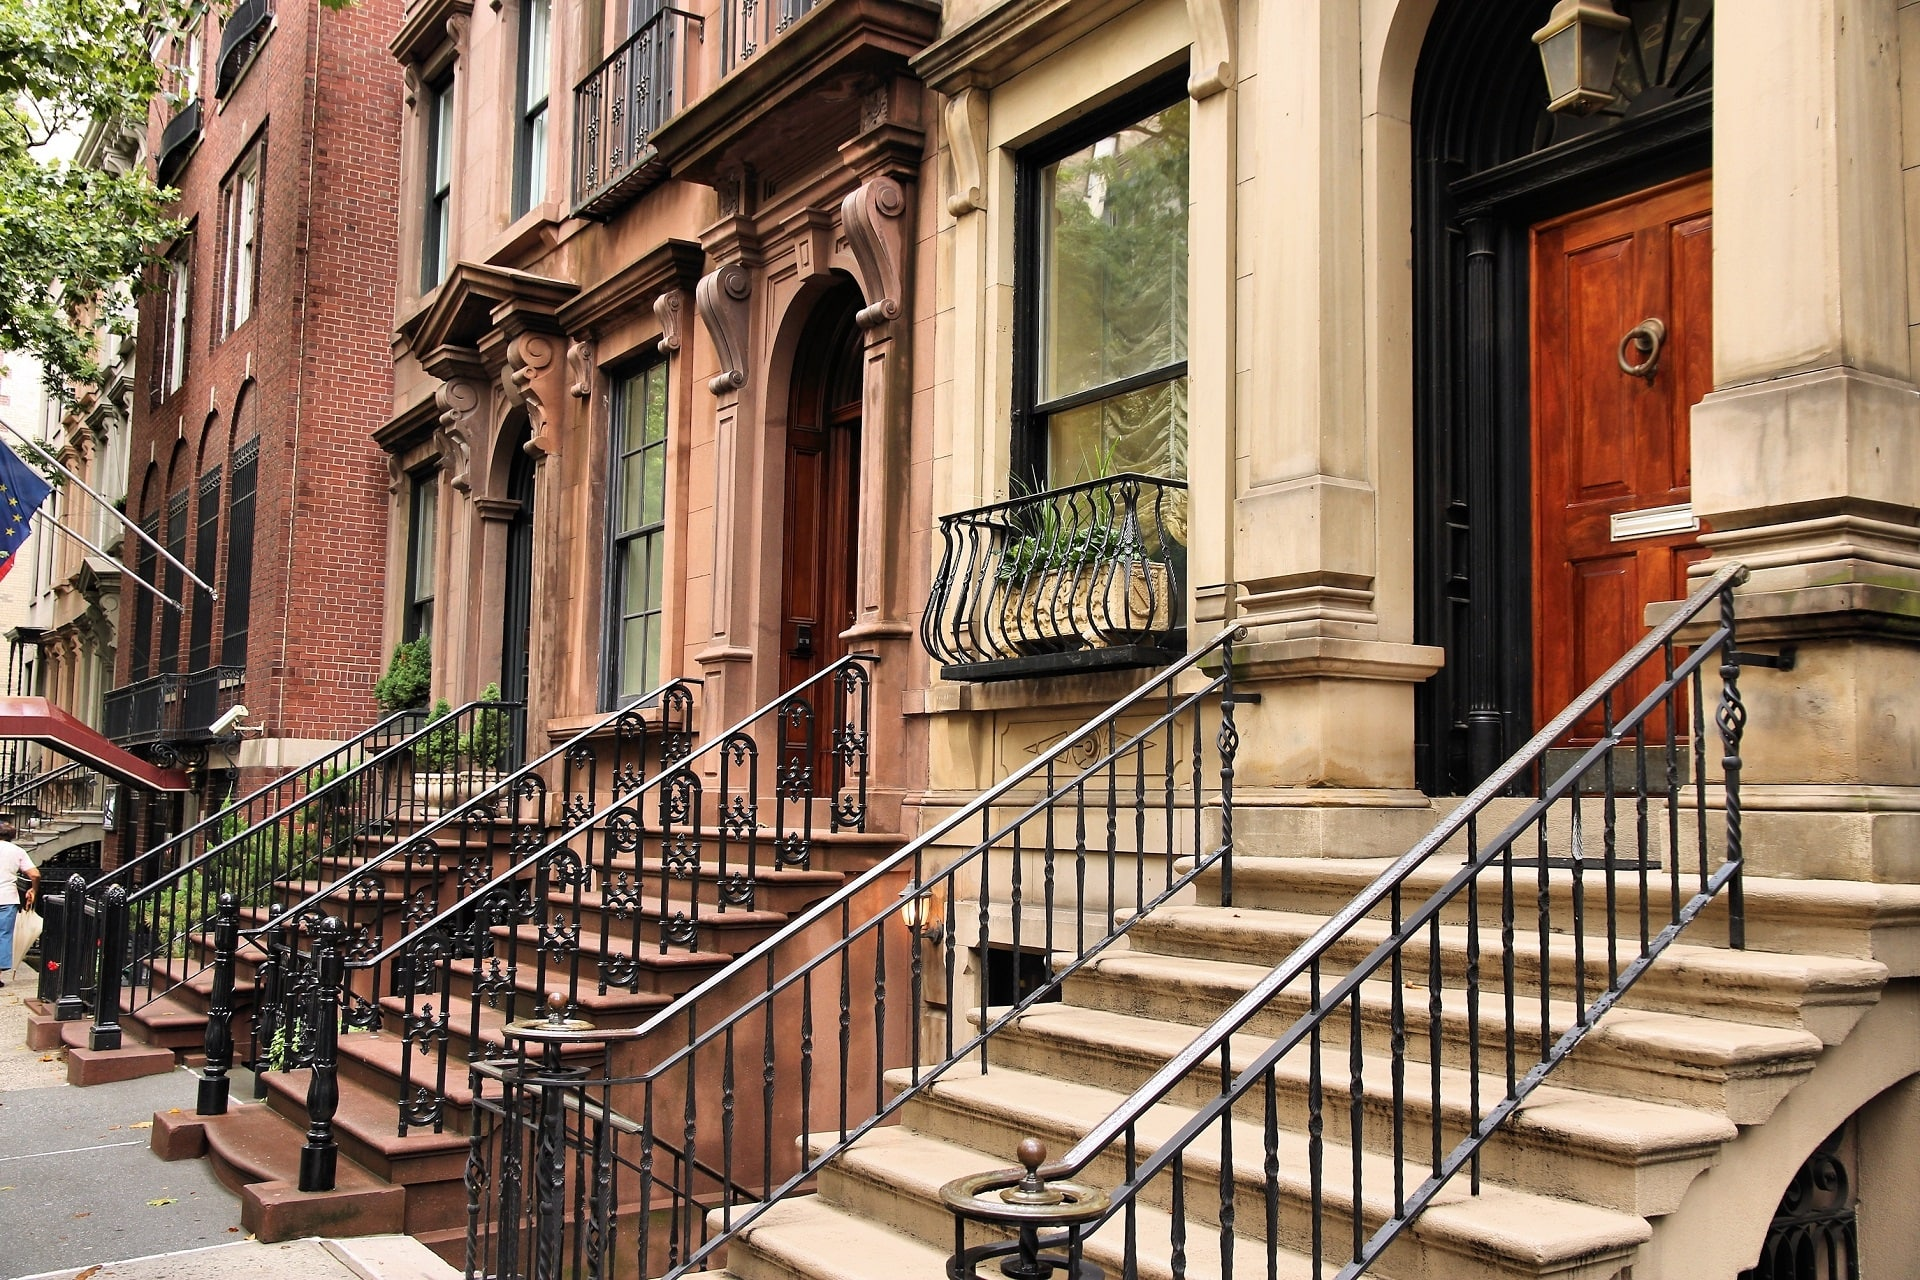 Brownstone House Chicago Brownstone: The Material That Became An Architectural